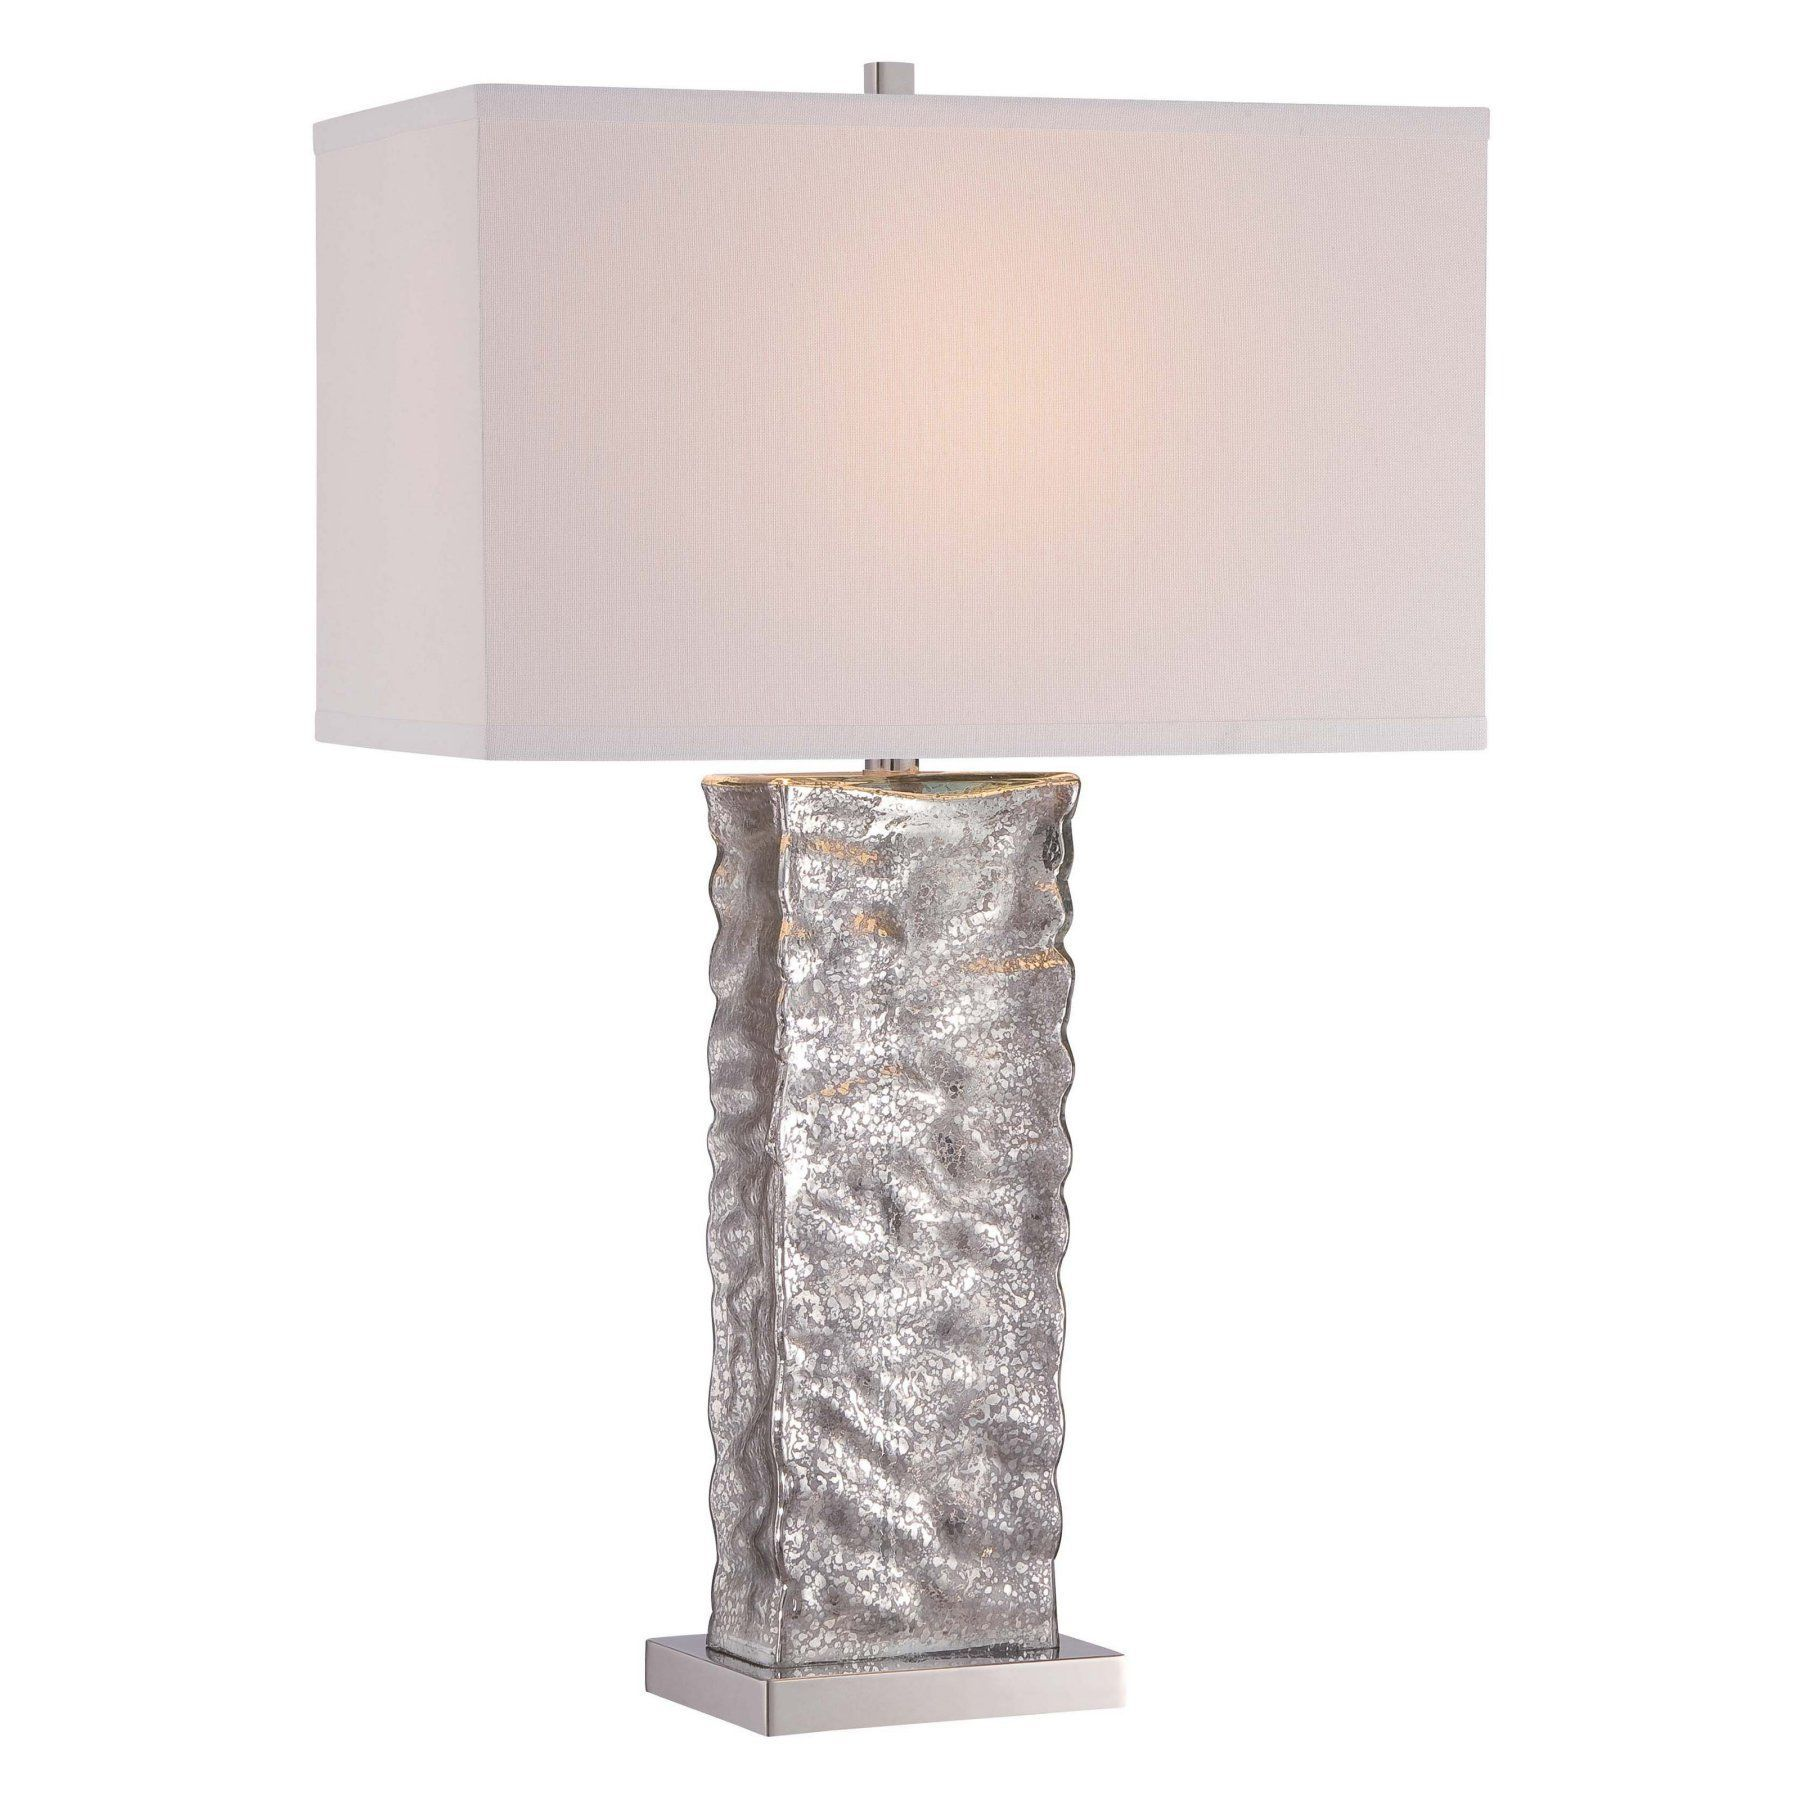 Minka lavery 12427 0 table lamp 12427 0 products minka lavery 12427 0 table lamp 12427 0 mozeypictures Image collections